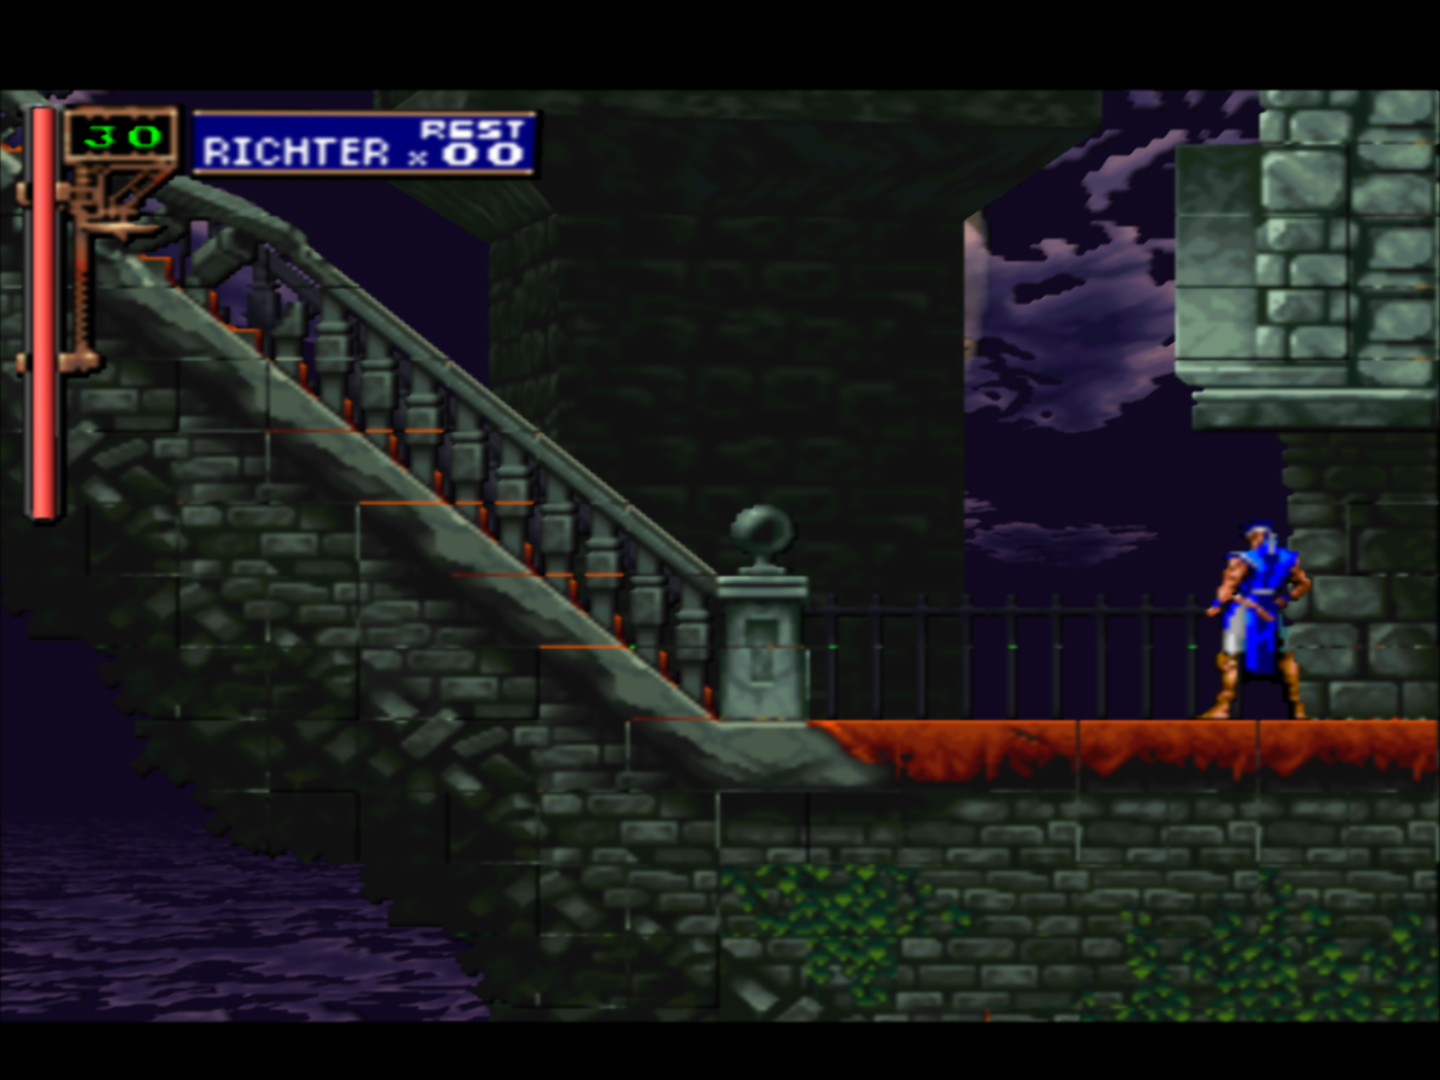 OpenGL] Castlevania Symphonia of the Night - Sprite Tiles